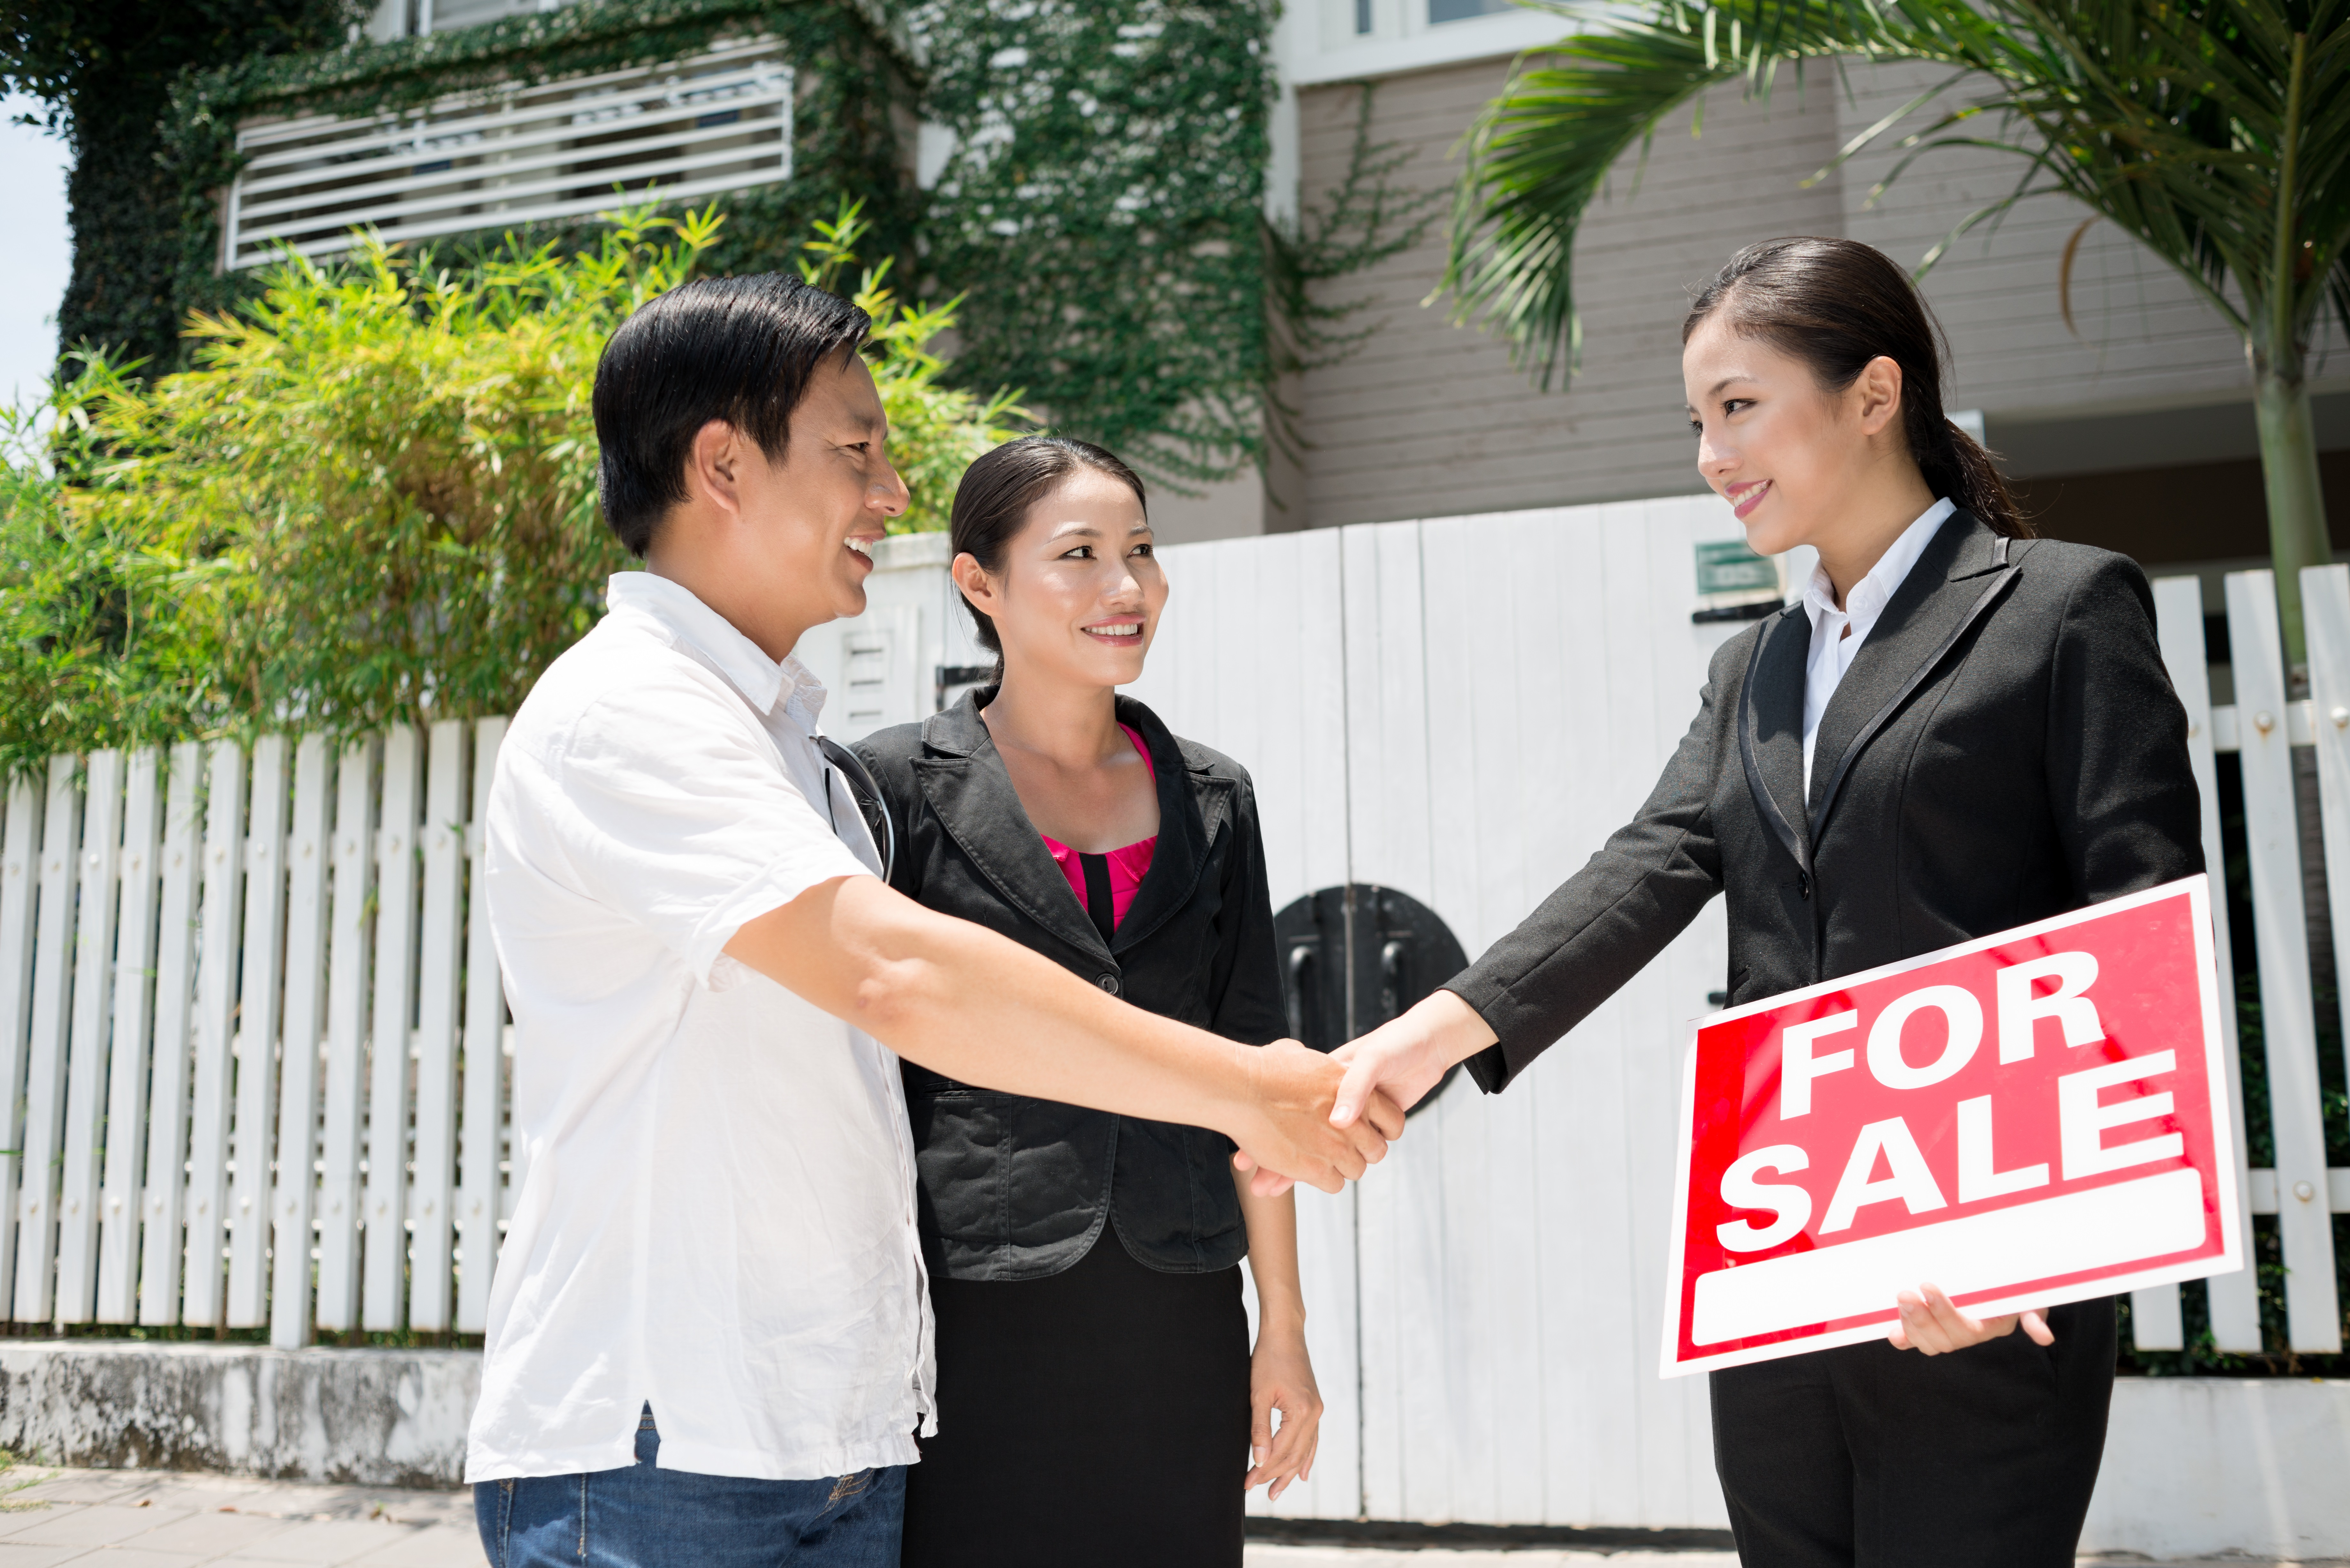 Personal Selling - benefits, expenses  |Personal Selling